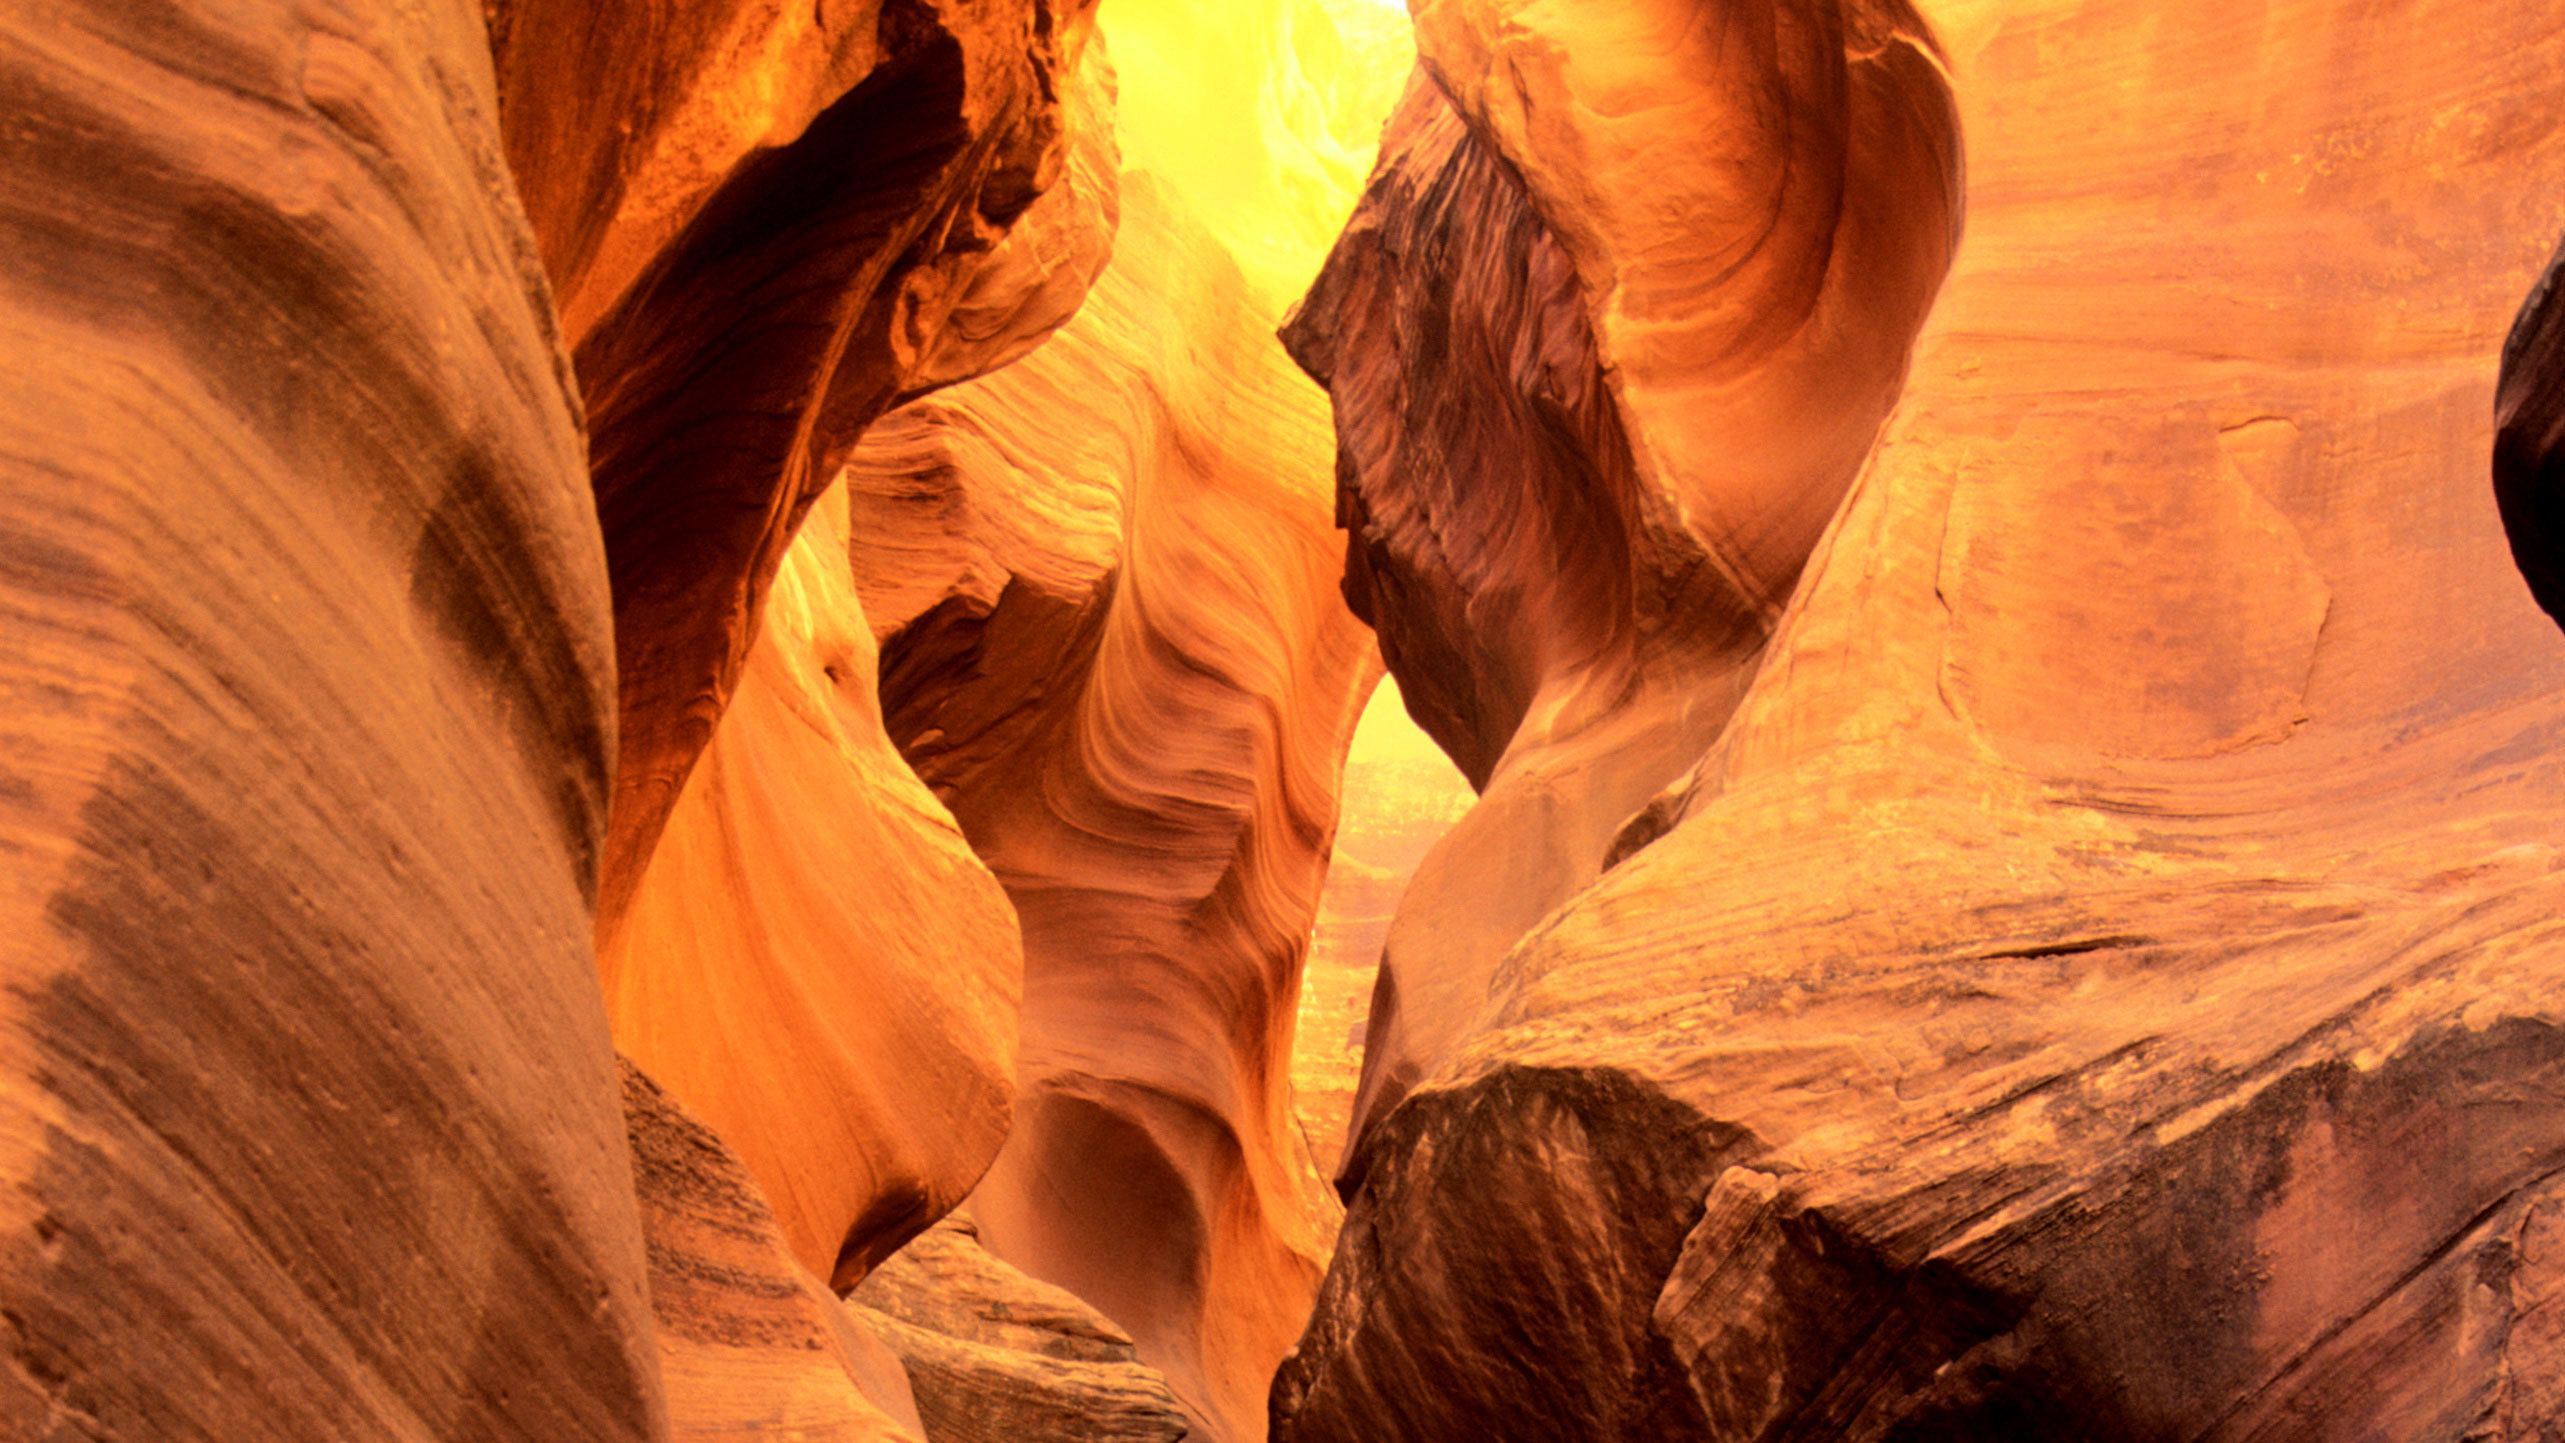 Antelope Canyon was formed by eons of erosion of Navajo Sandstone